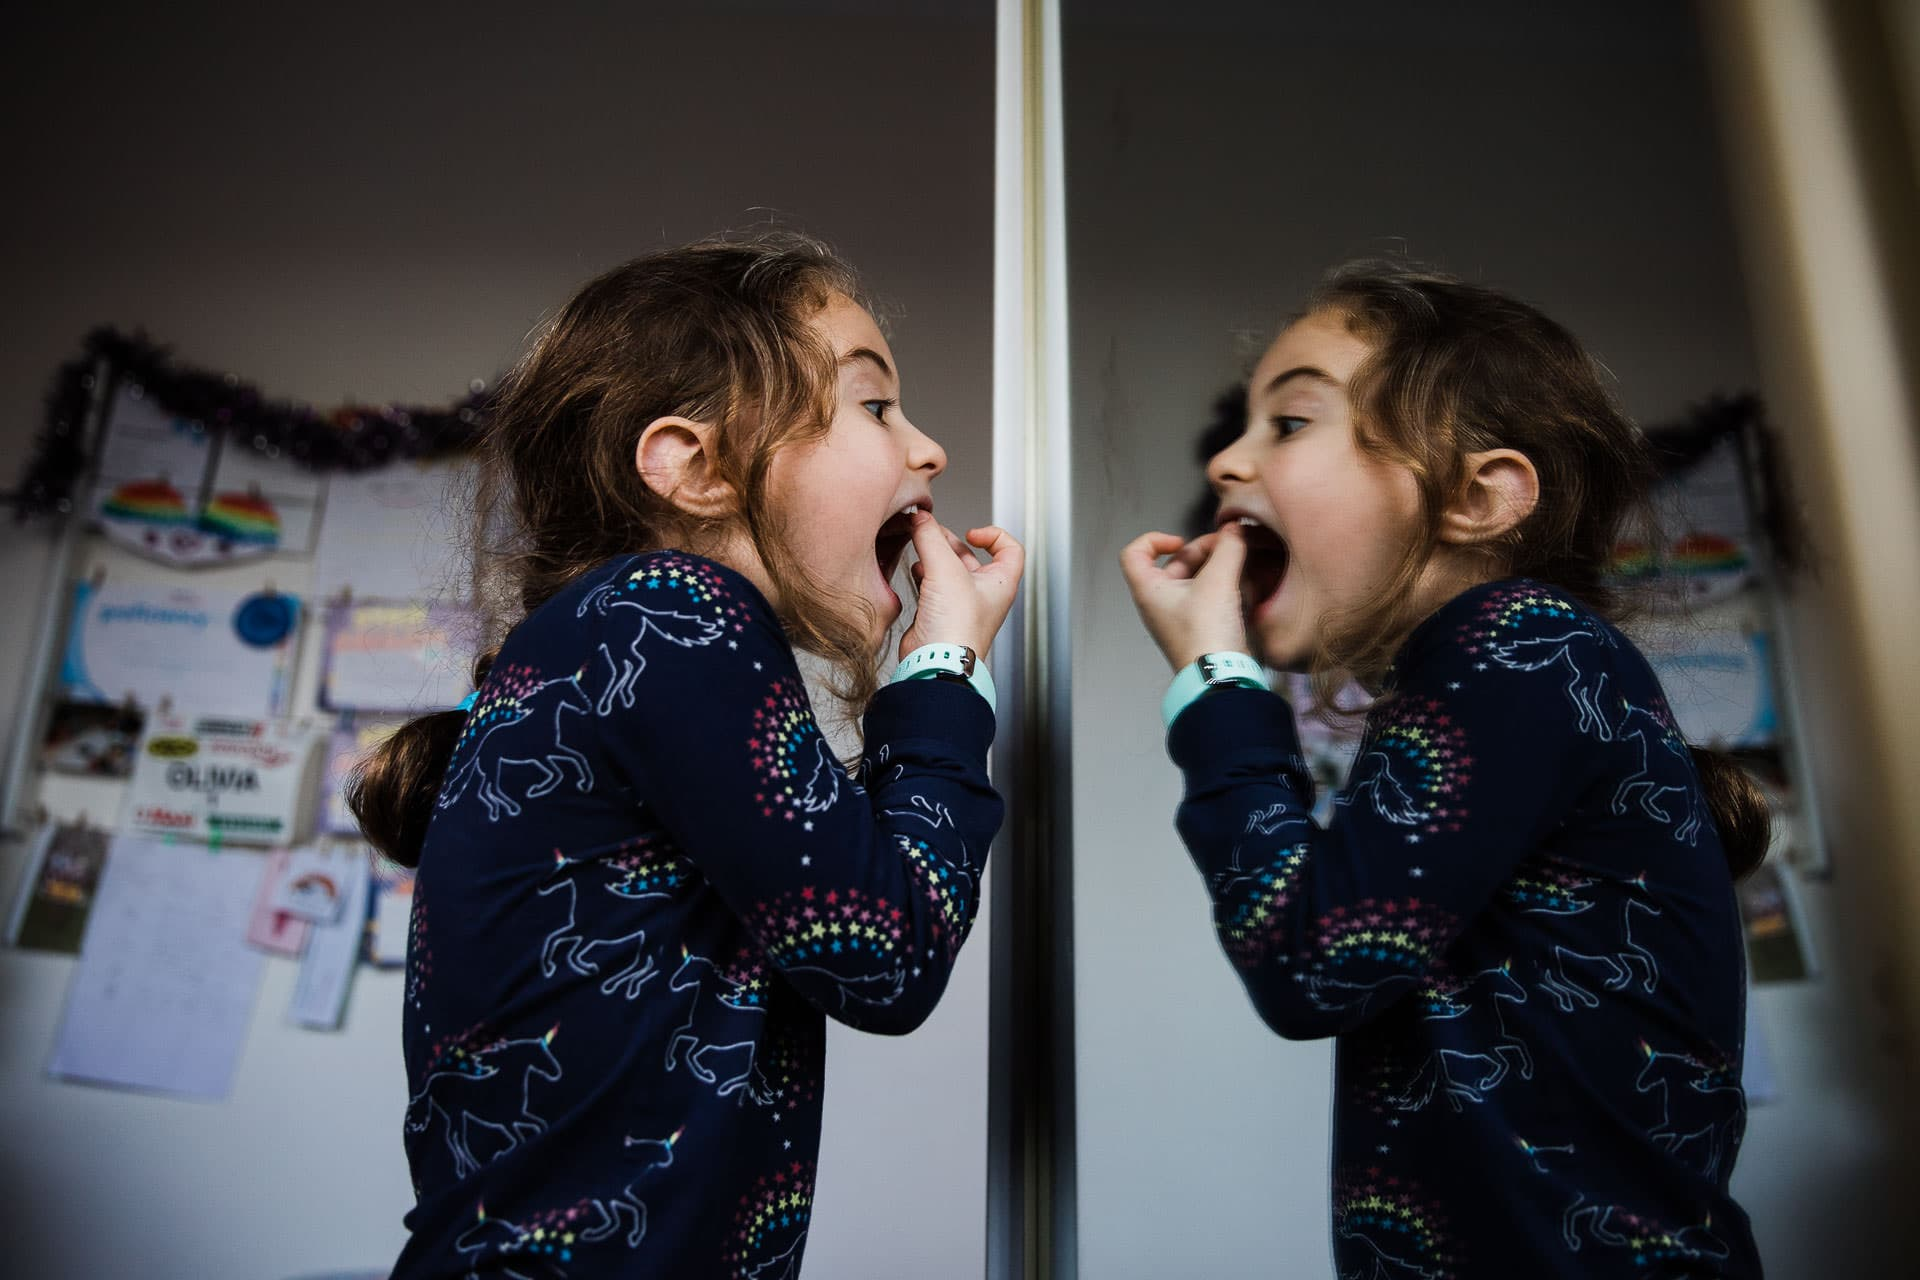 girl pulling wobbly tooth